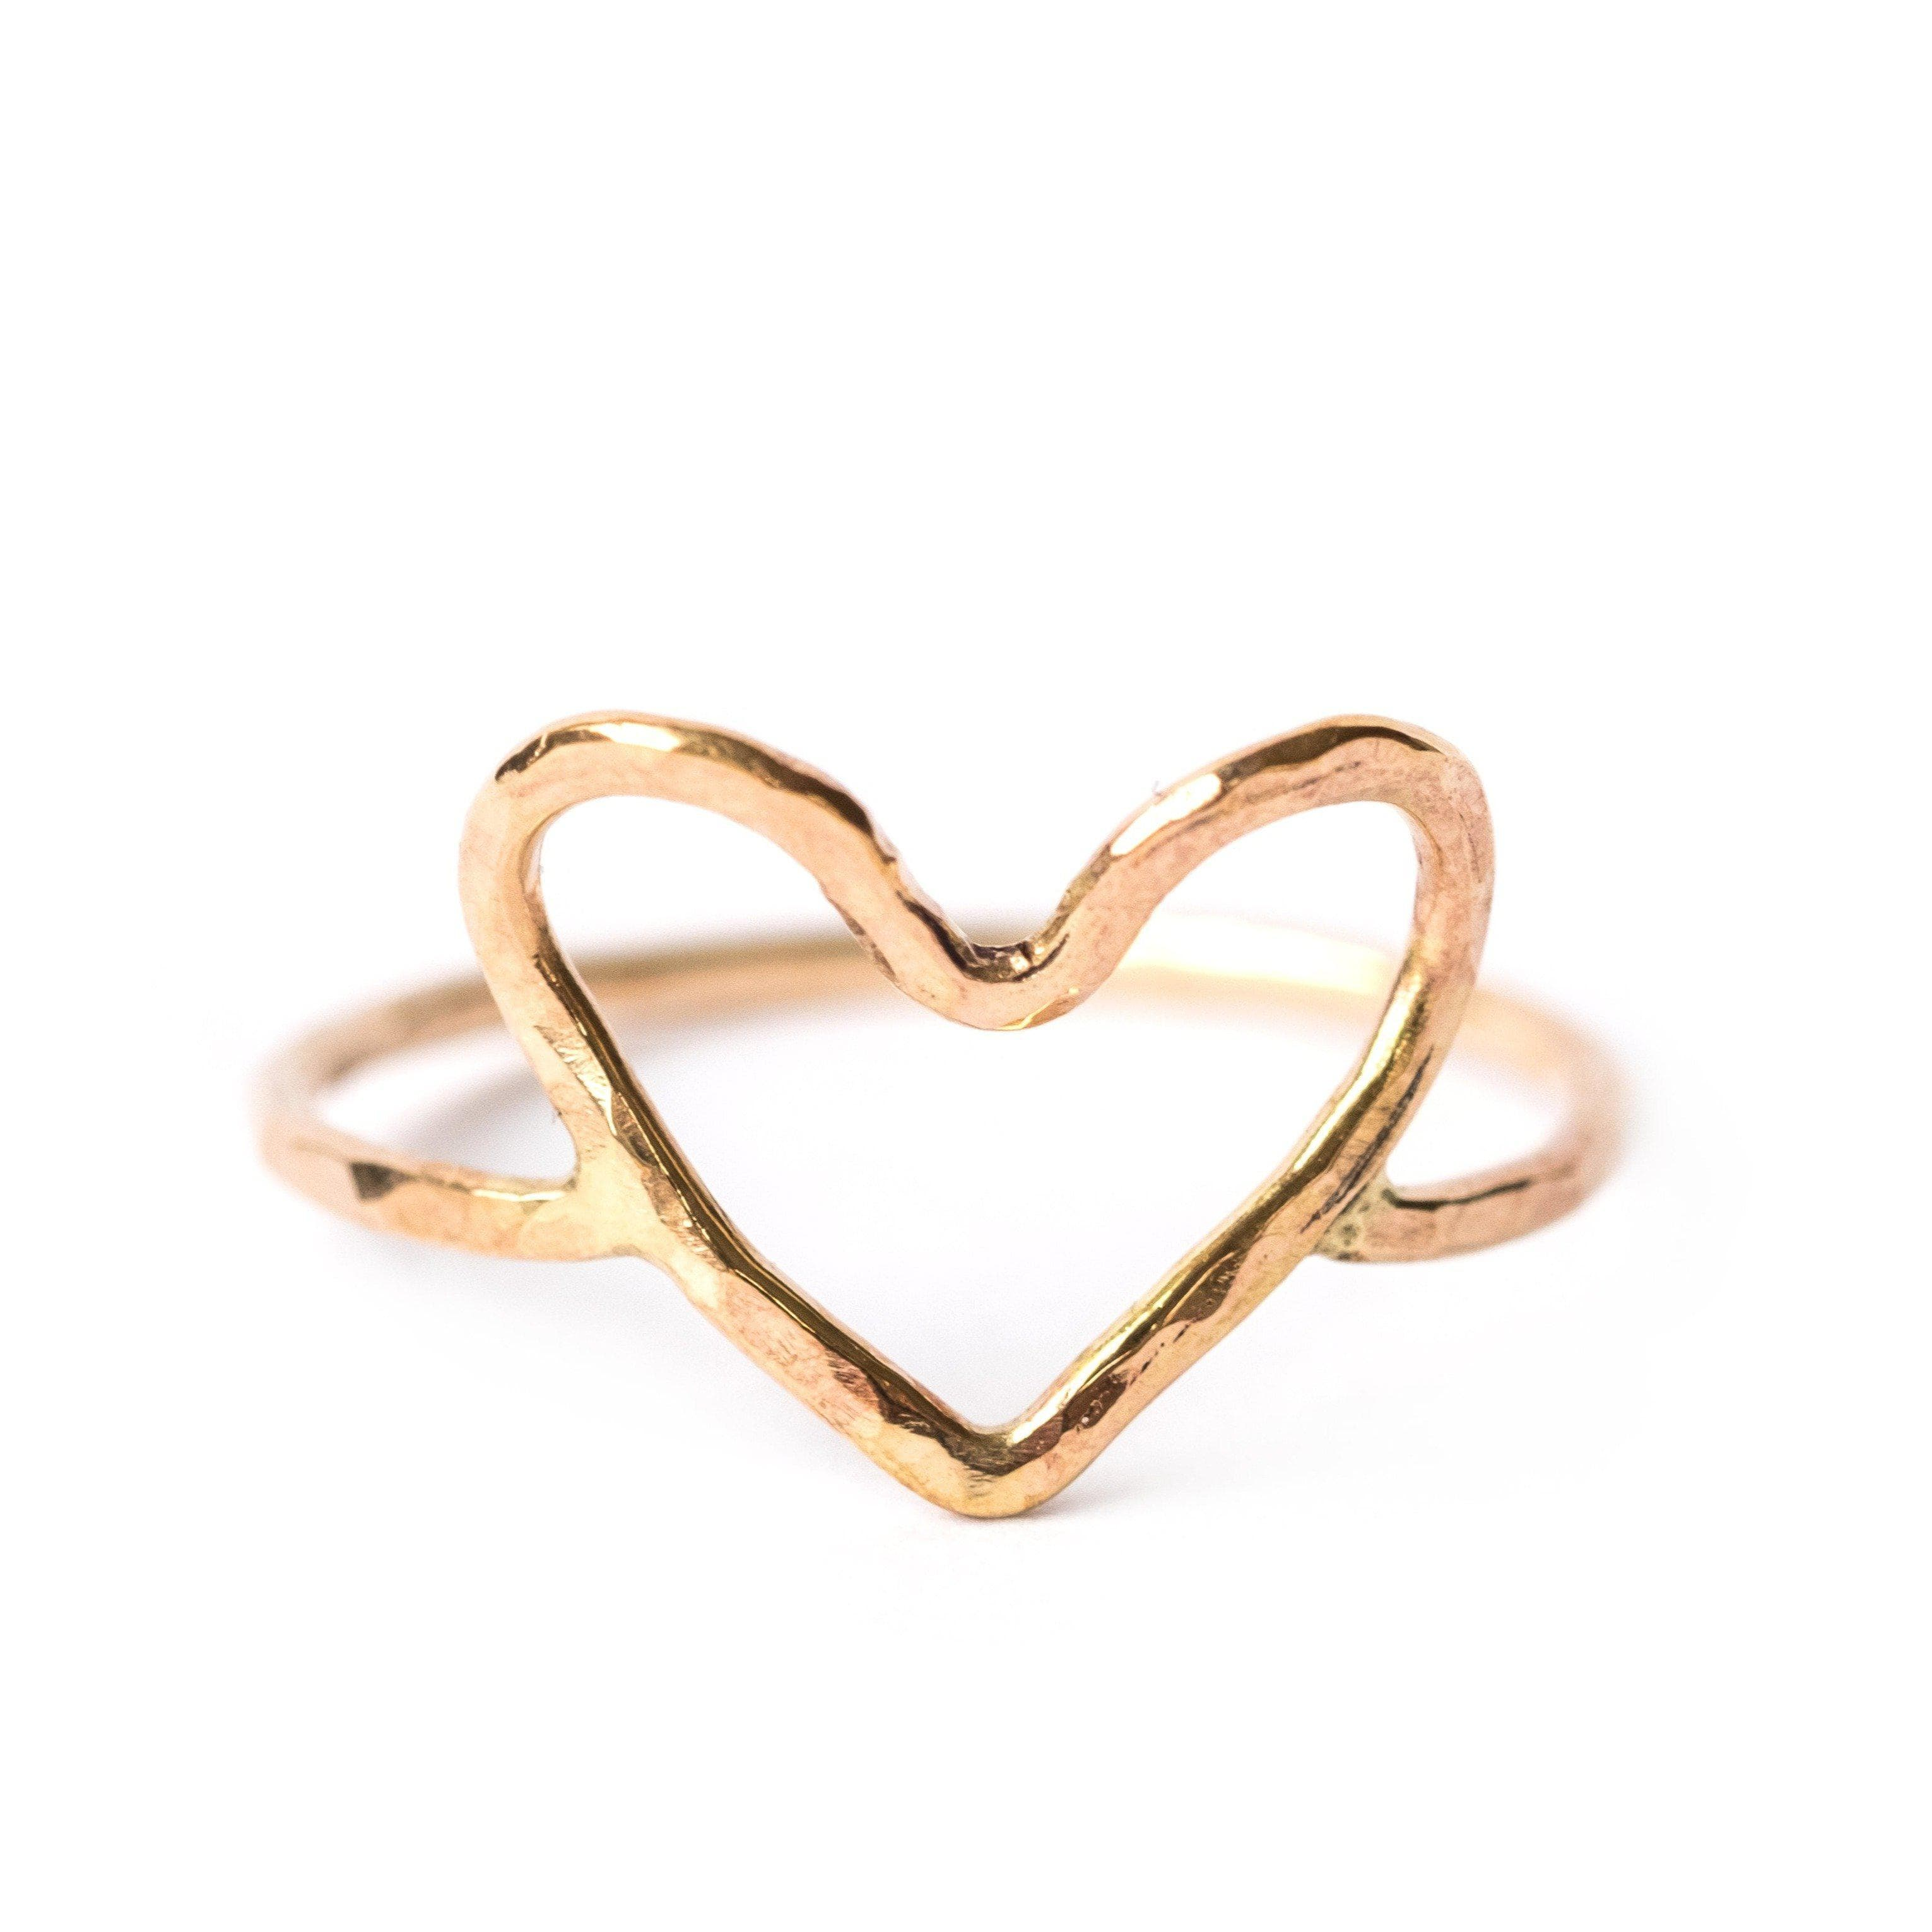 Heart Ring, Rings, adorn512, adorn512